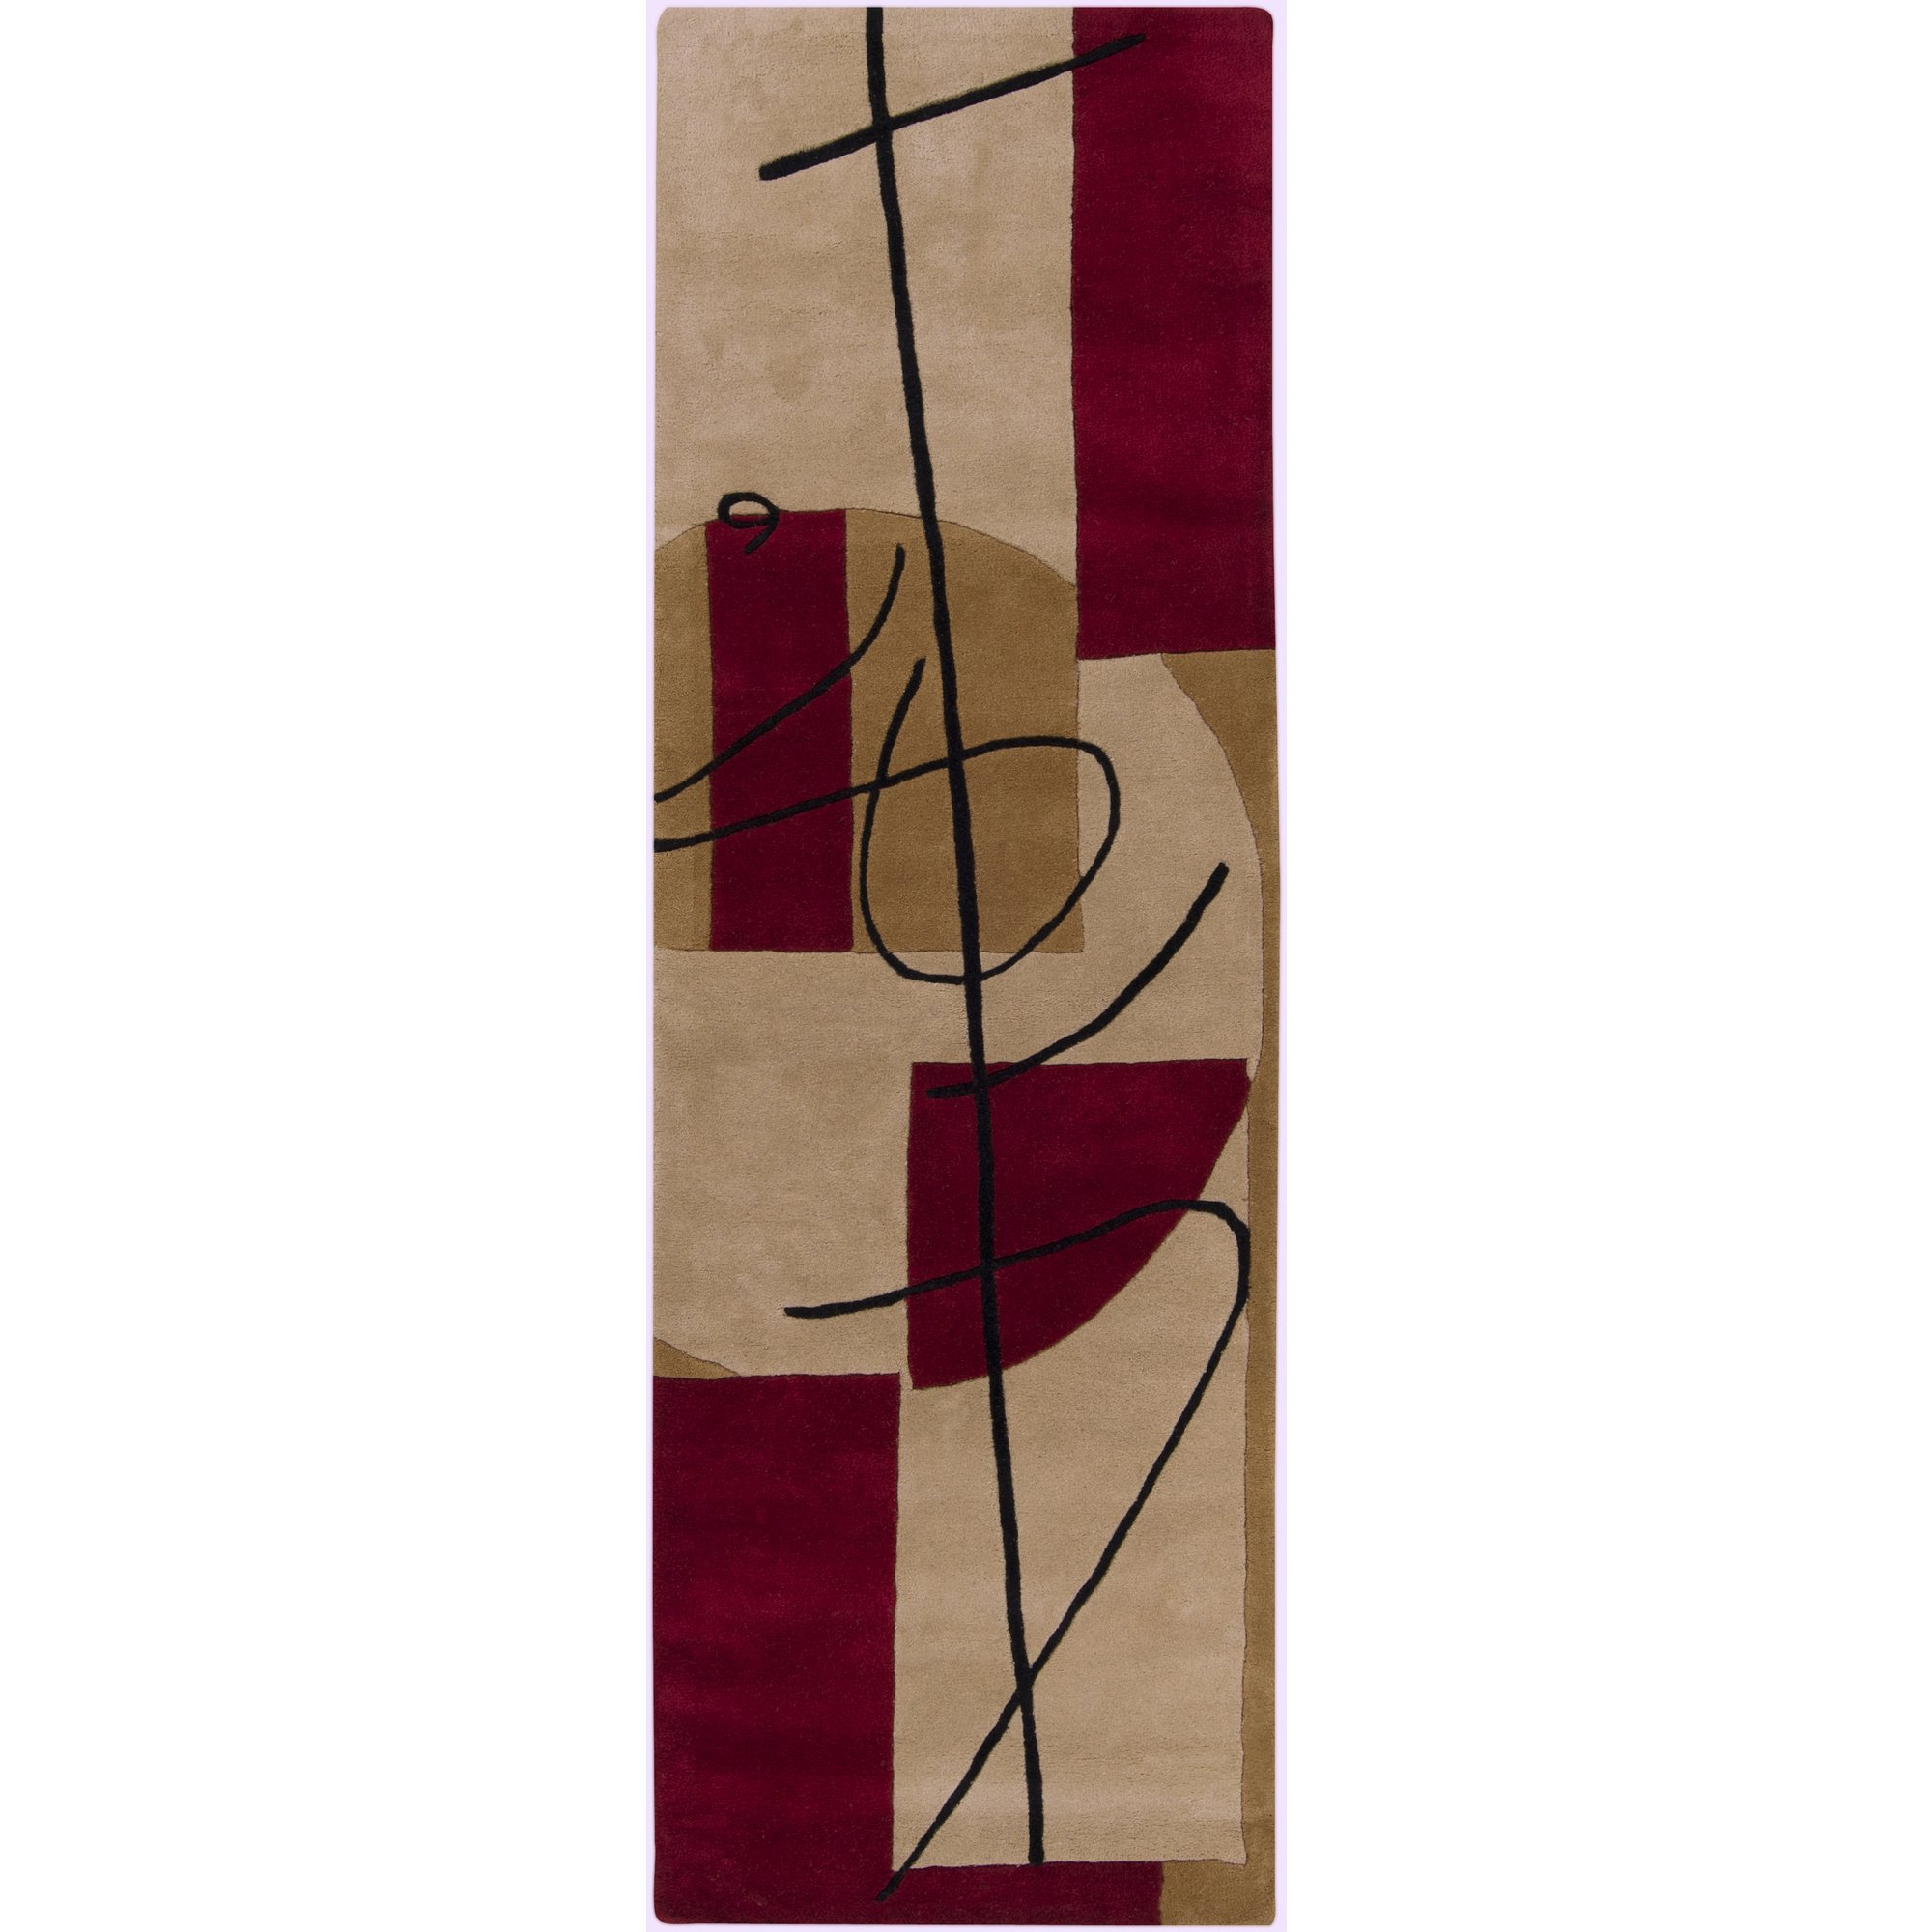 Surya Naya HST-3005 Contemporary Hand Tufted 100% New Zealand Wool Frappe 2'6'' x 8' Abstract Runner